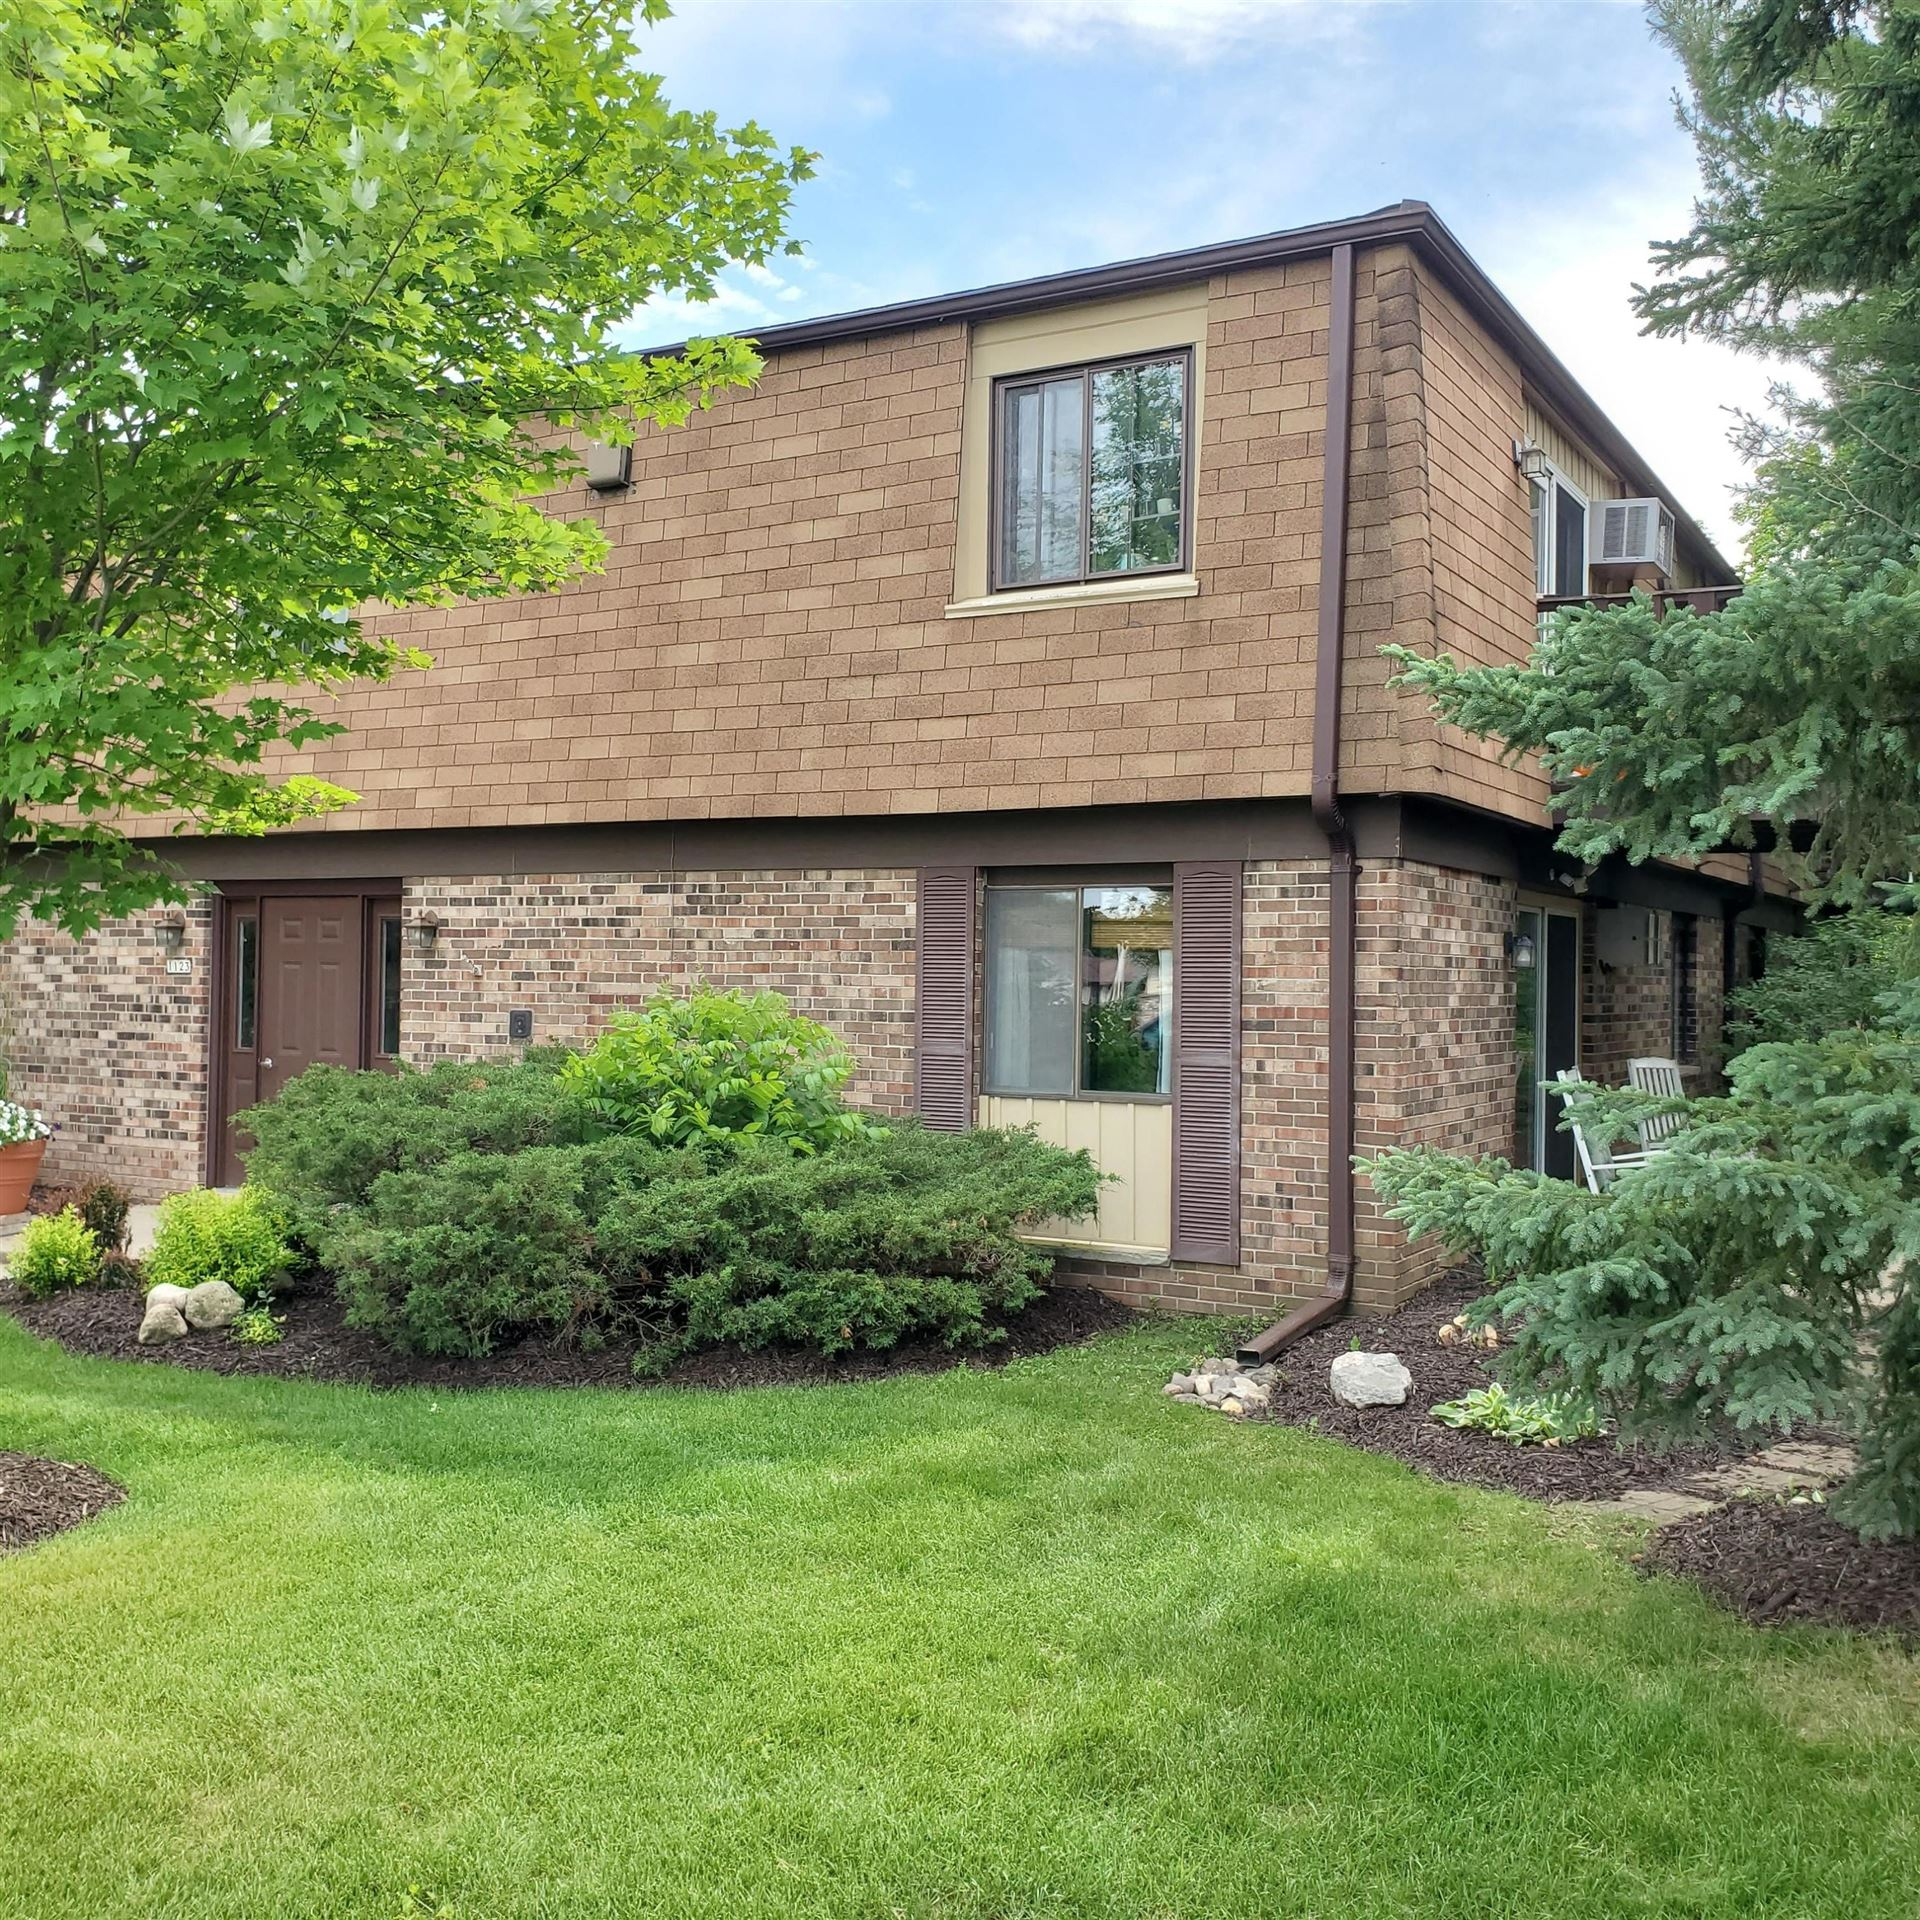 1123 Marcia AVE #105, West Bend, WI 53090 - #: 1696025